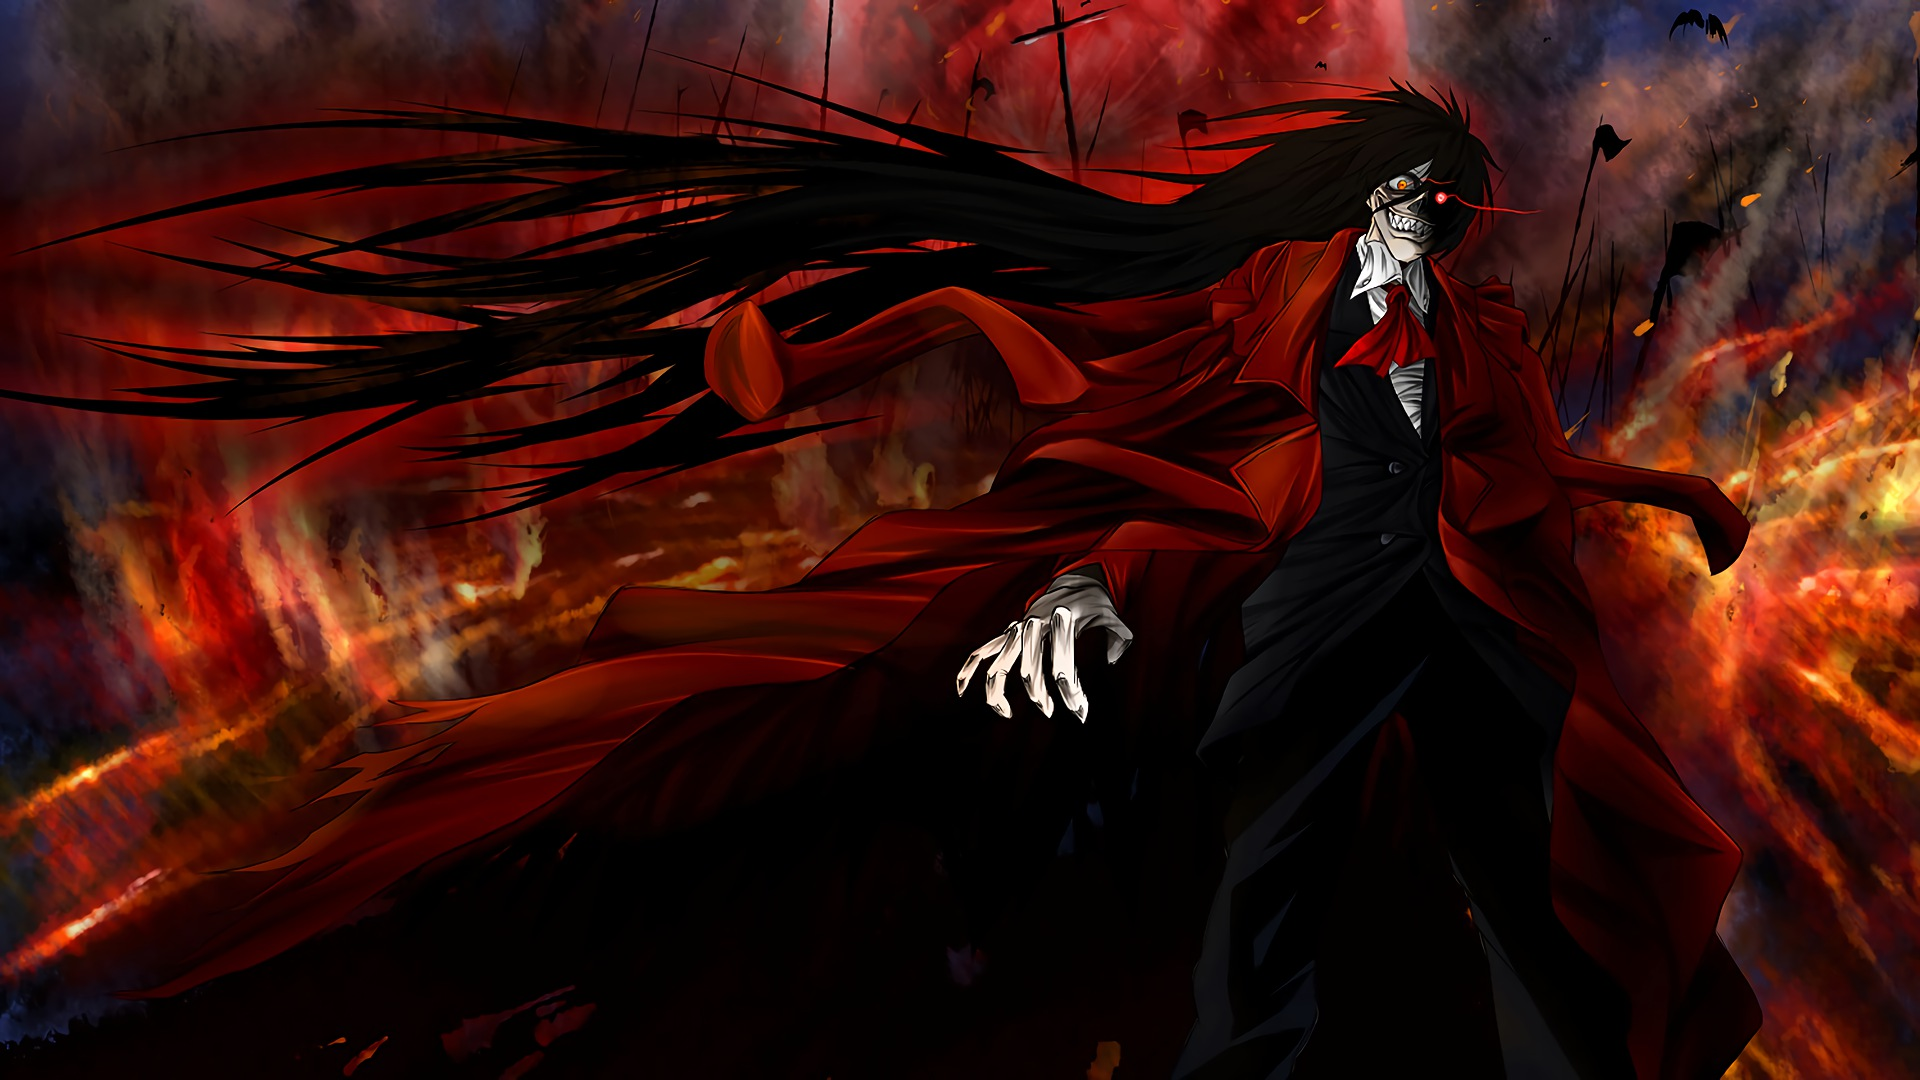 Hellsing hd wallpaper background image 1920x1080 id - Anime hellsing wallpaper ...